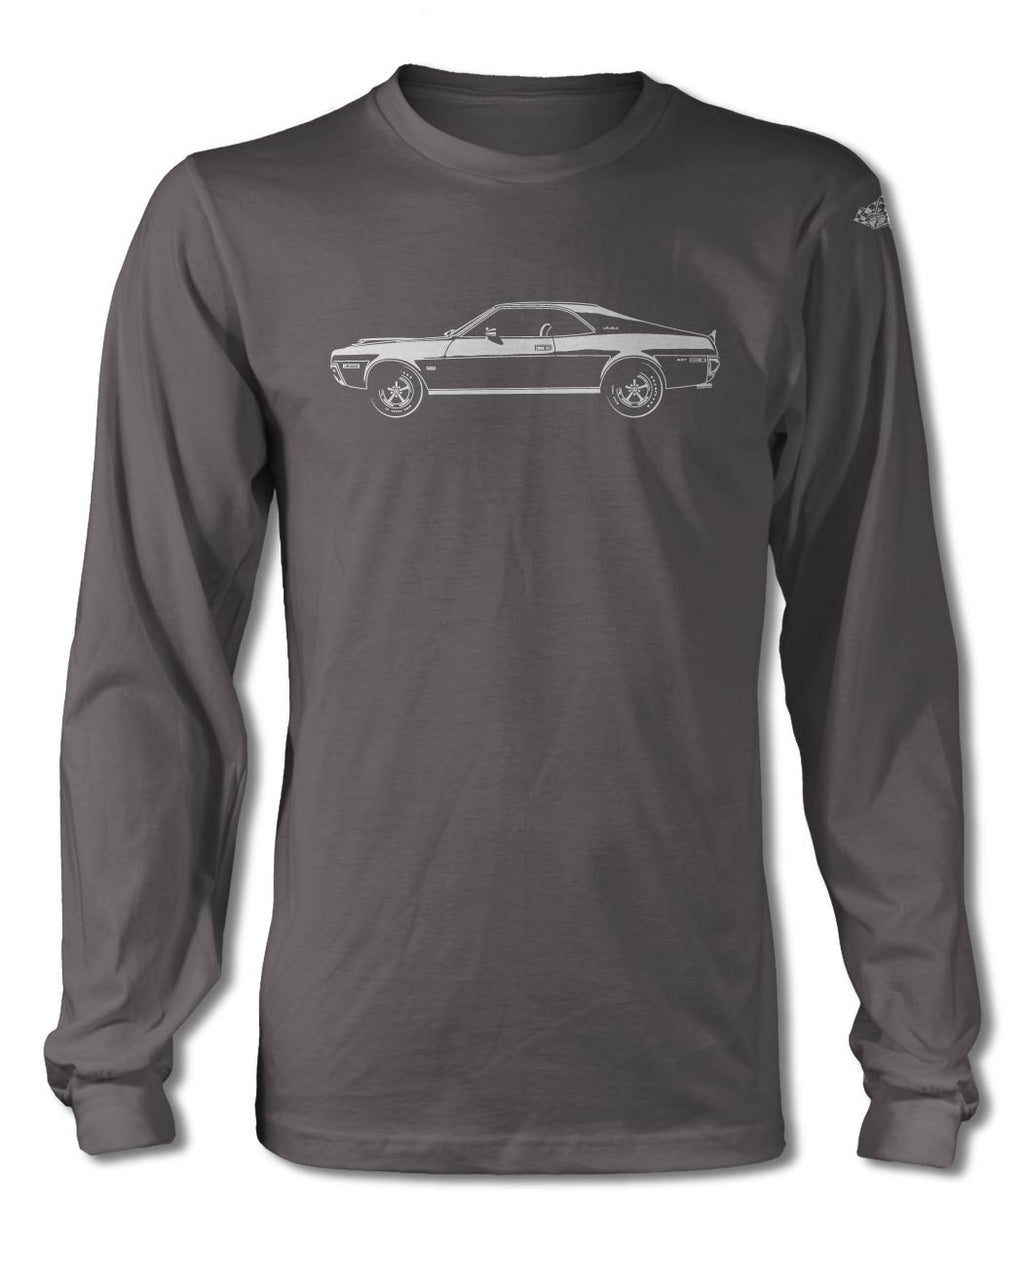 1970 AMC Javelin Coupe T-Shirt - Long Sleeves - Side View